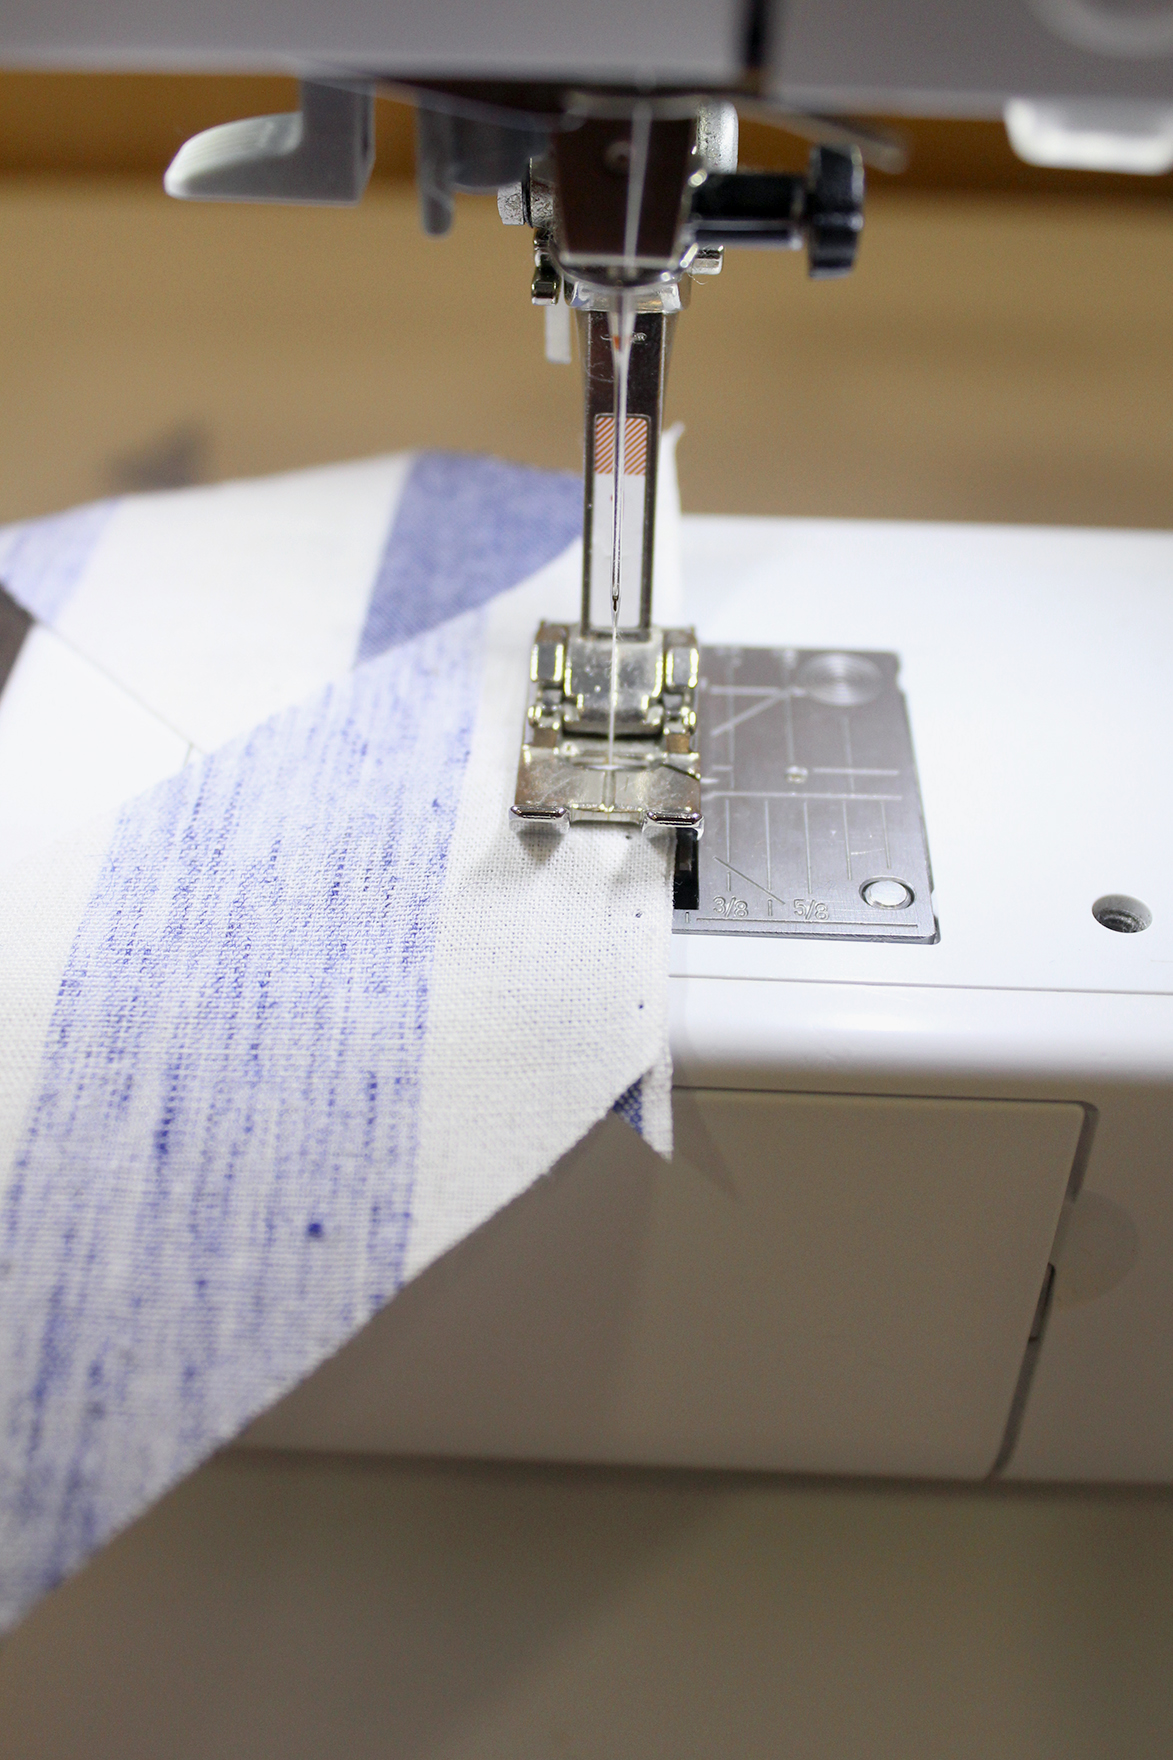 How To Make Bulk Bias Binding - Sewing Your First Binding Seam